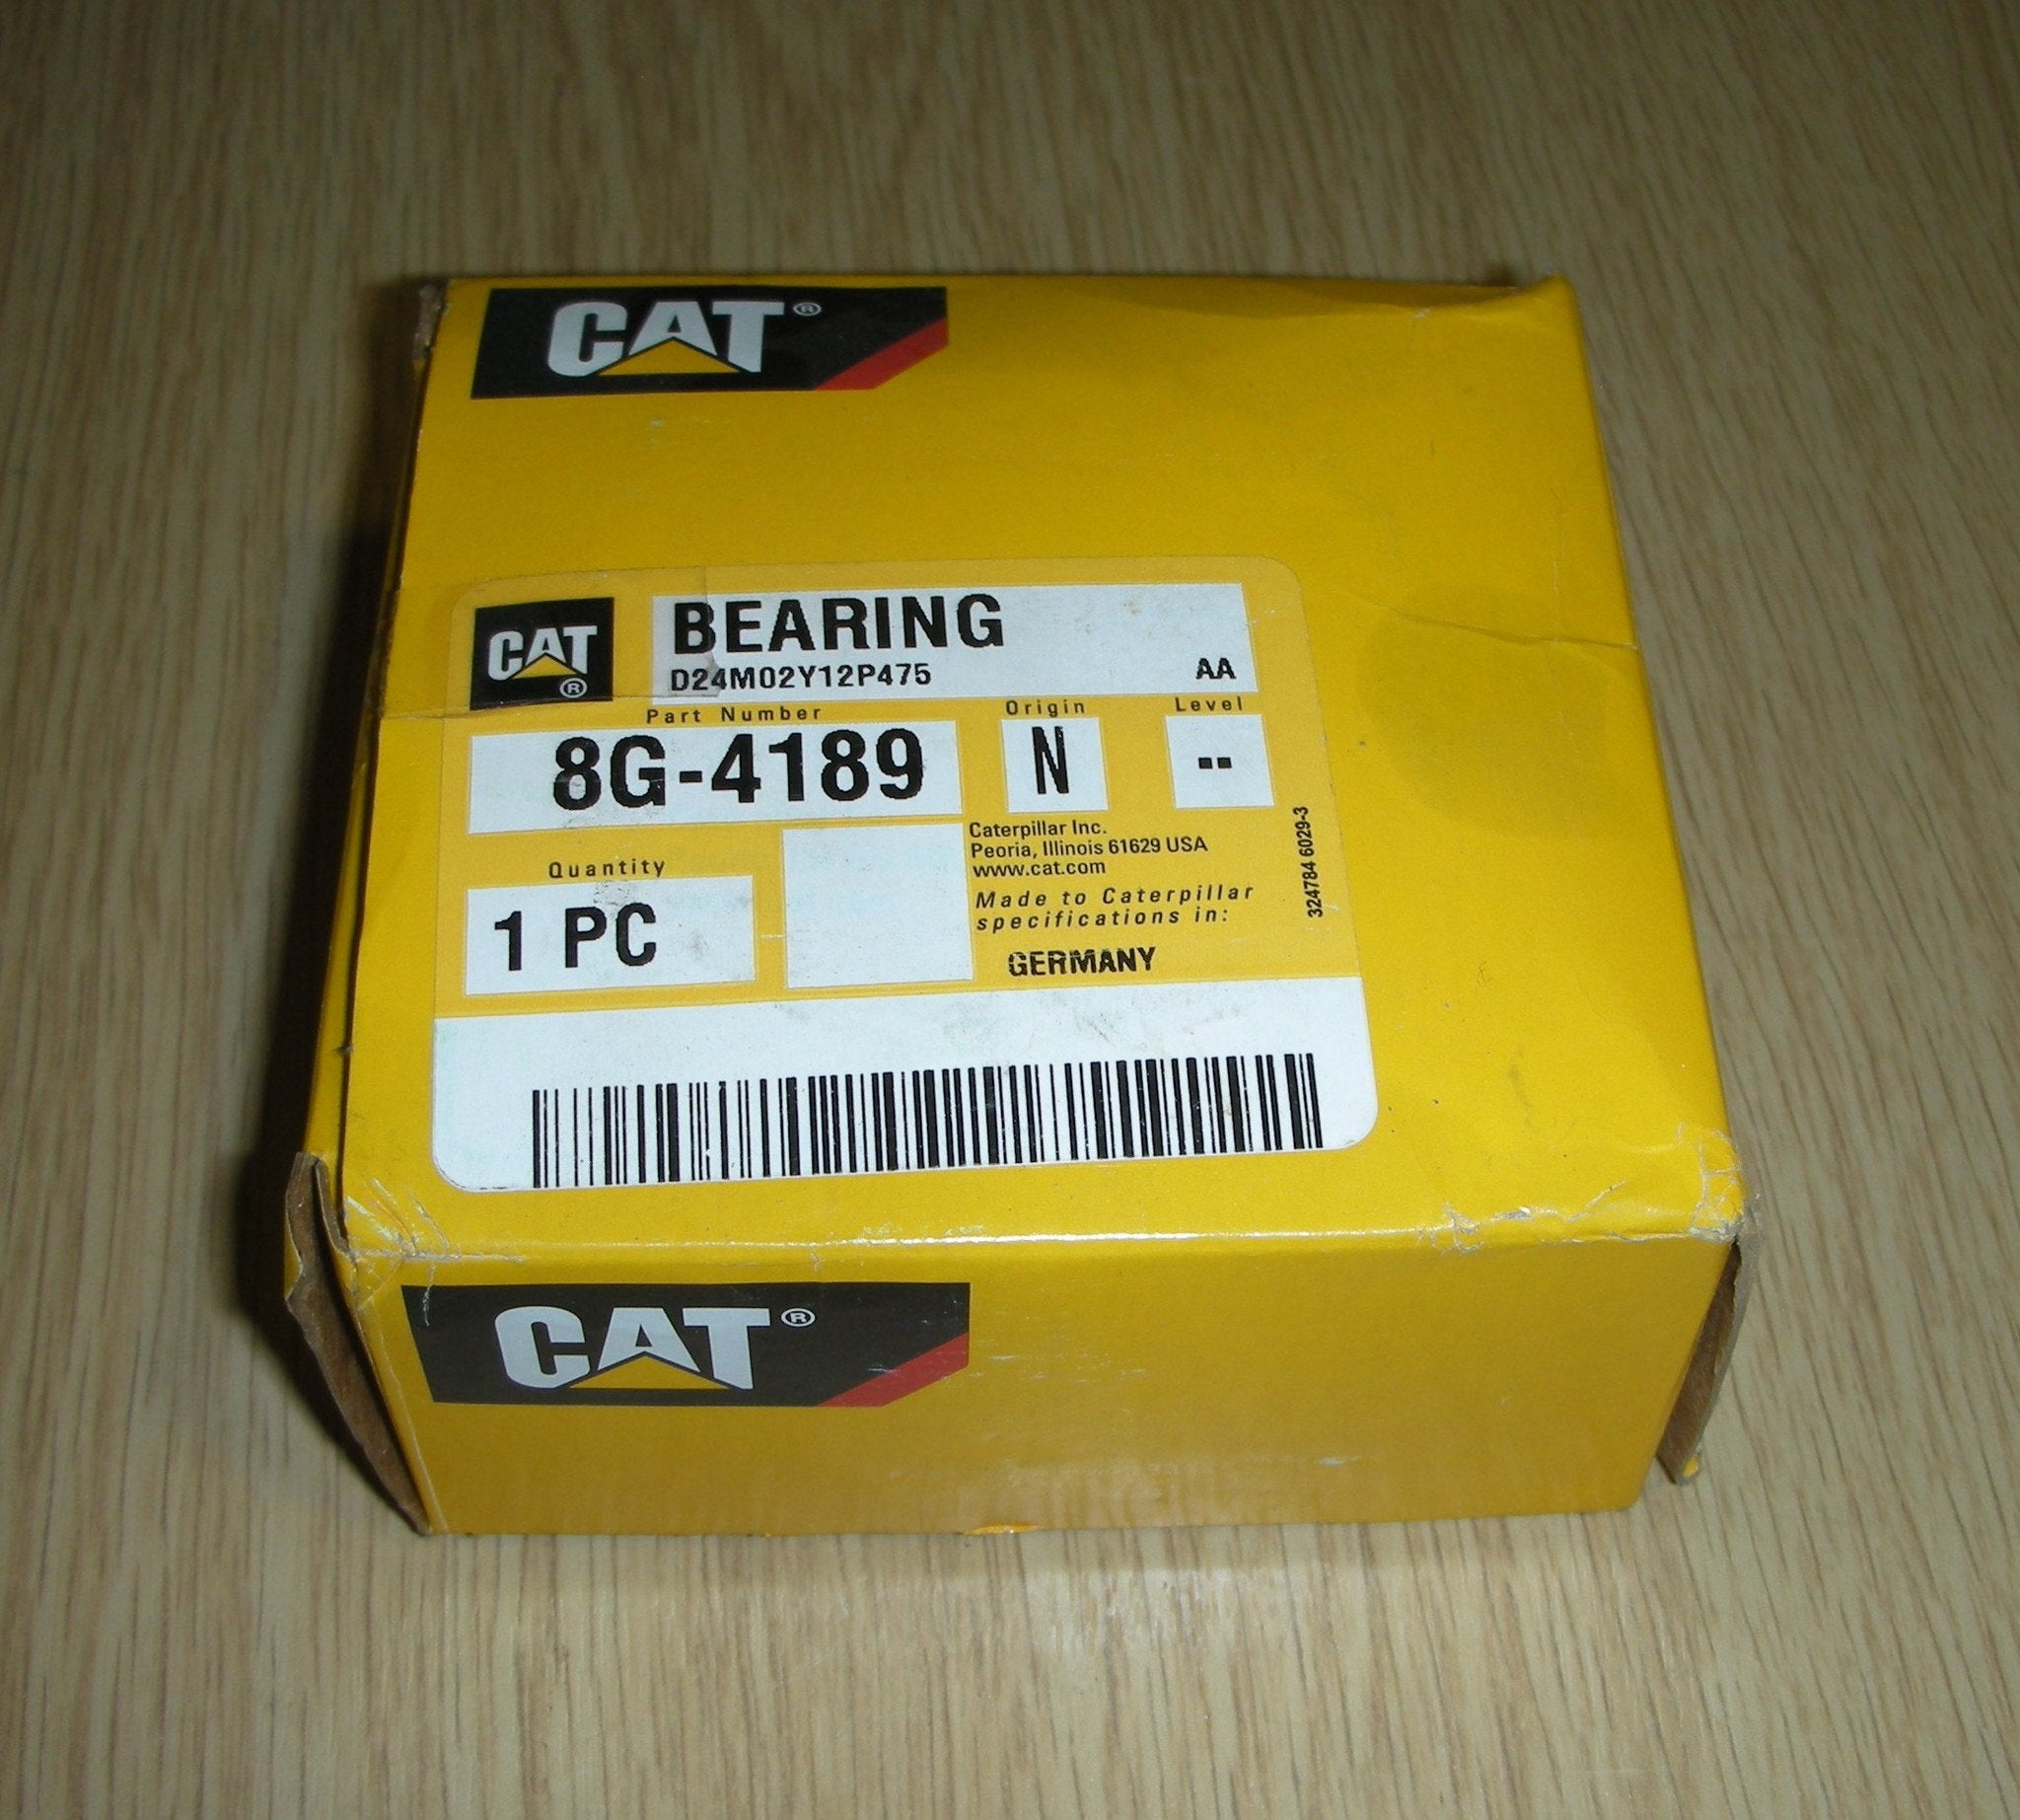 Cat Bearing 8G-4189 - BRM-SHOP.COM